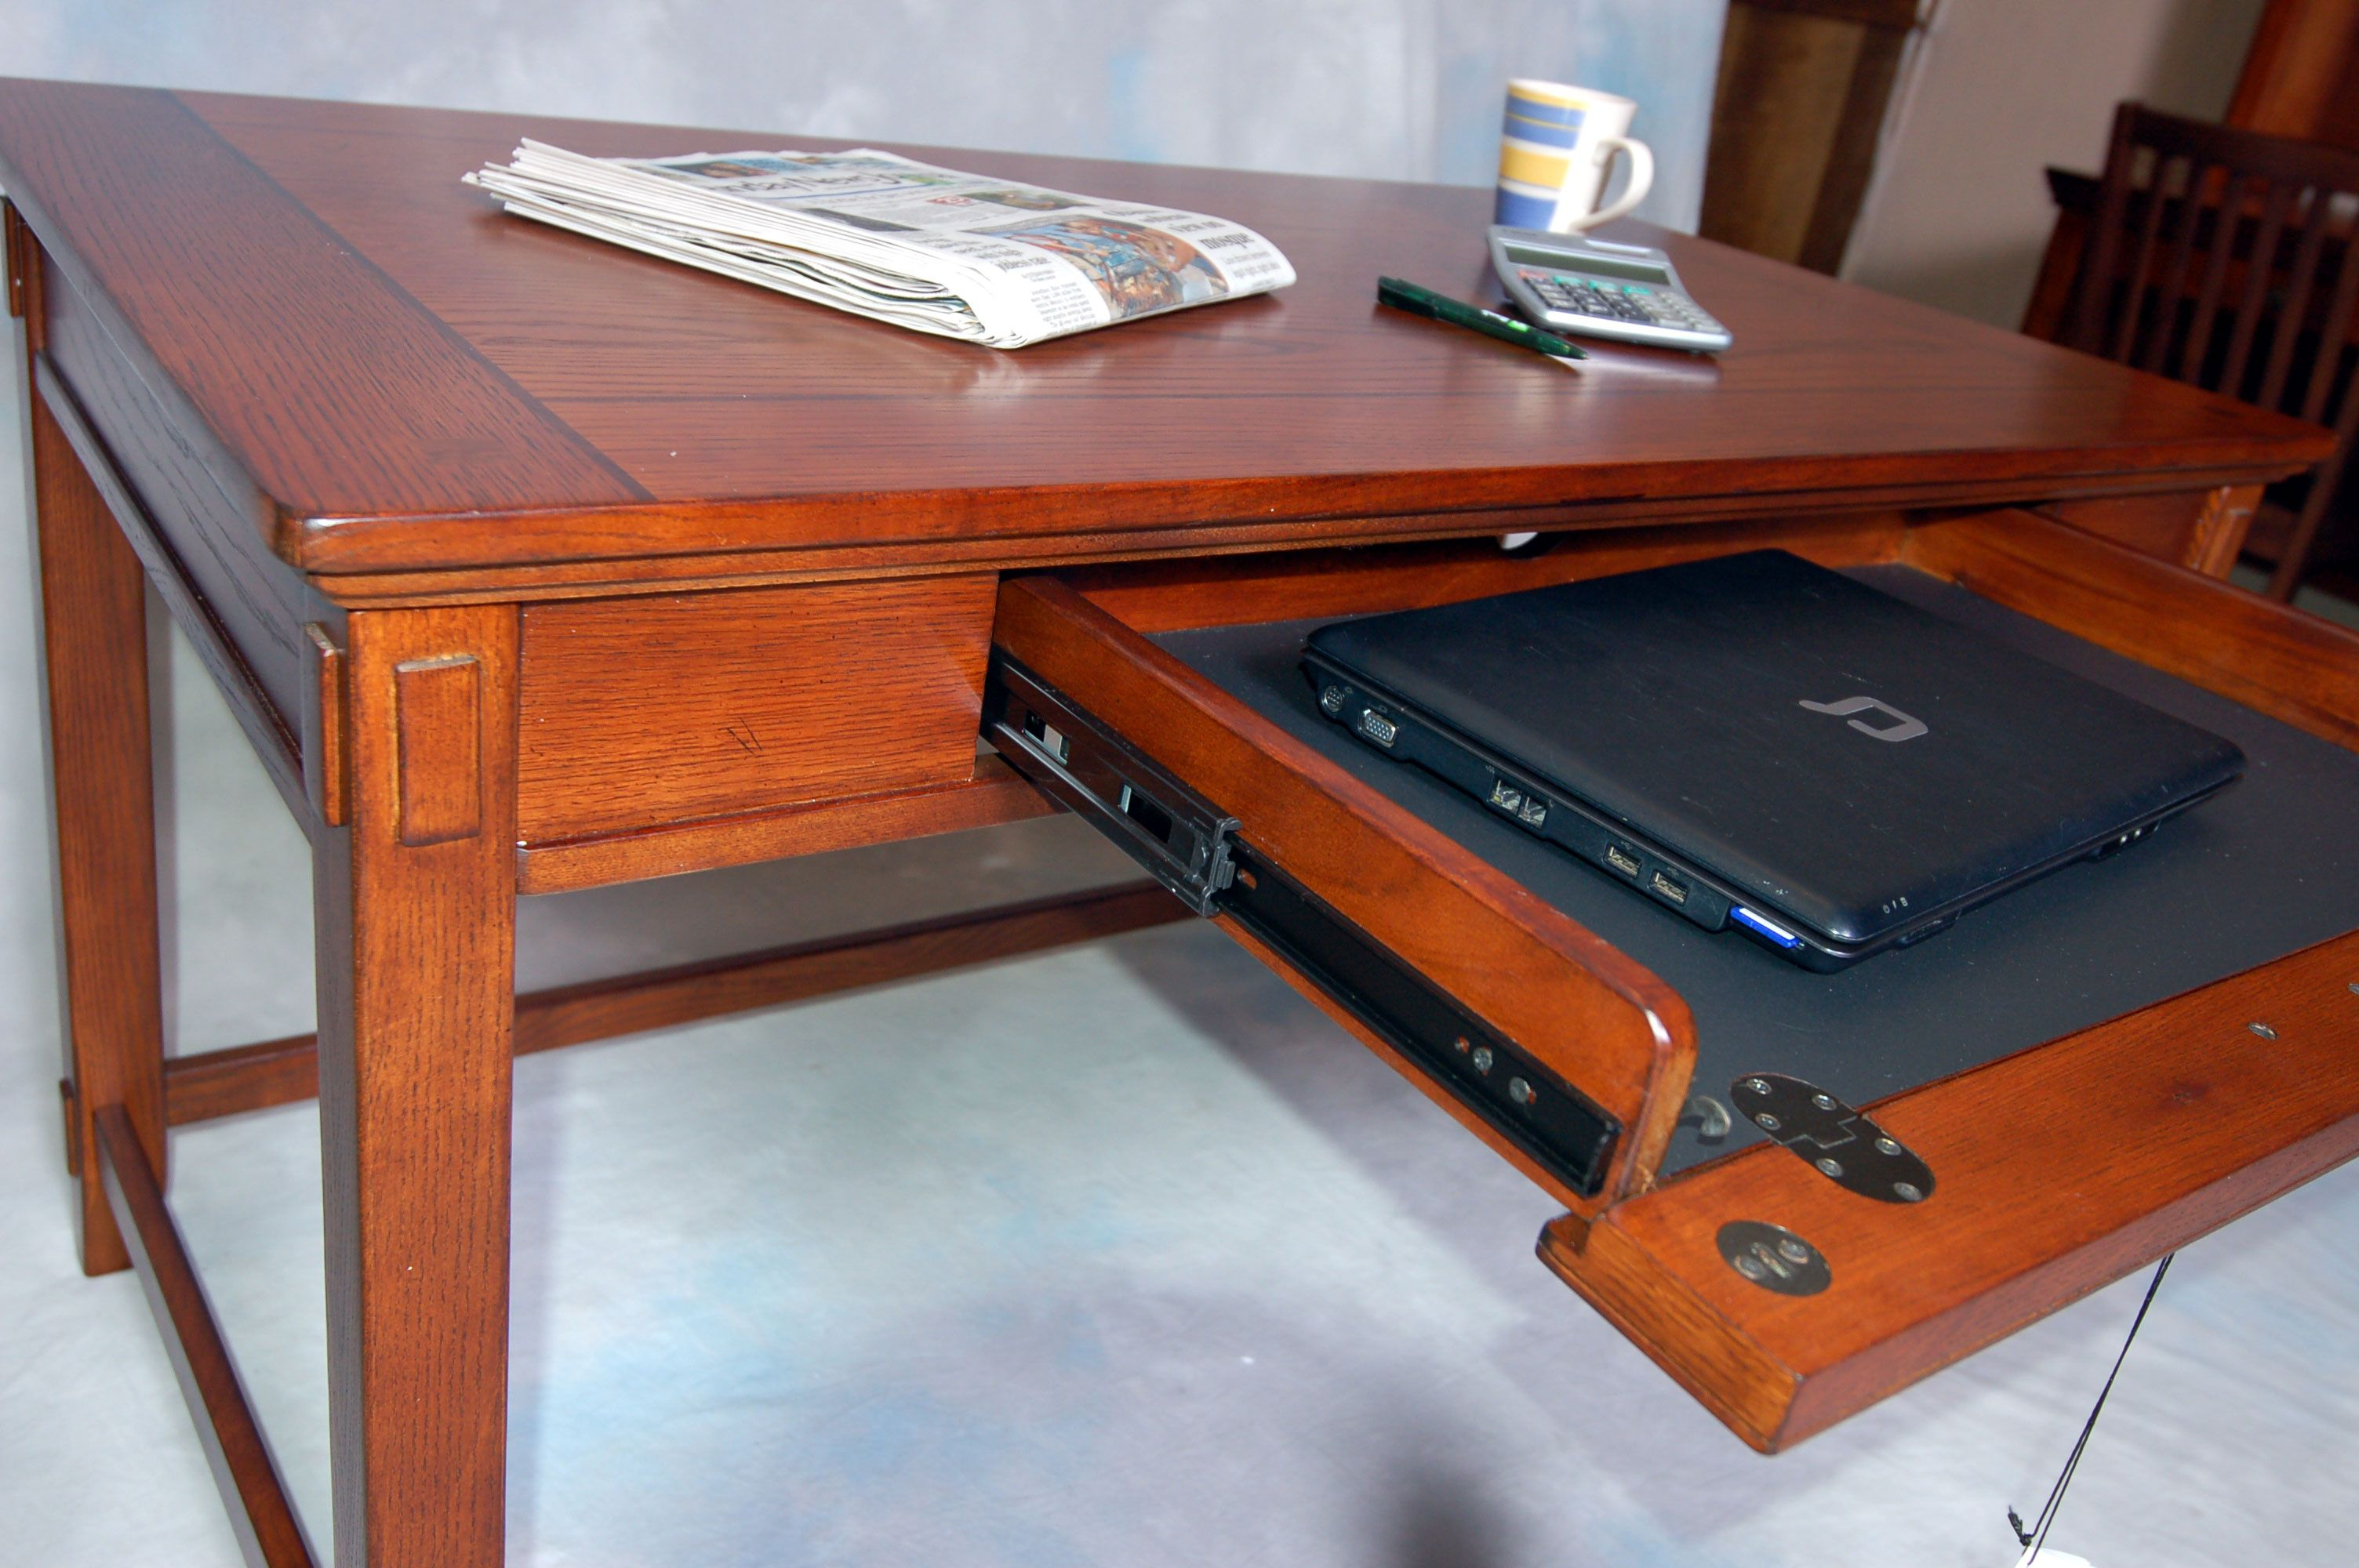 Computer Desk Clearance | ... Oak Mission Style Student Office Computer Desk Writing Table | eBay